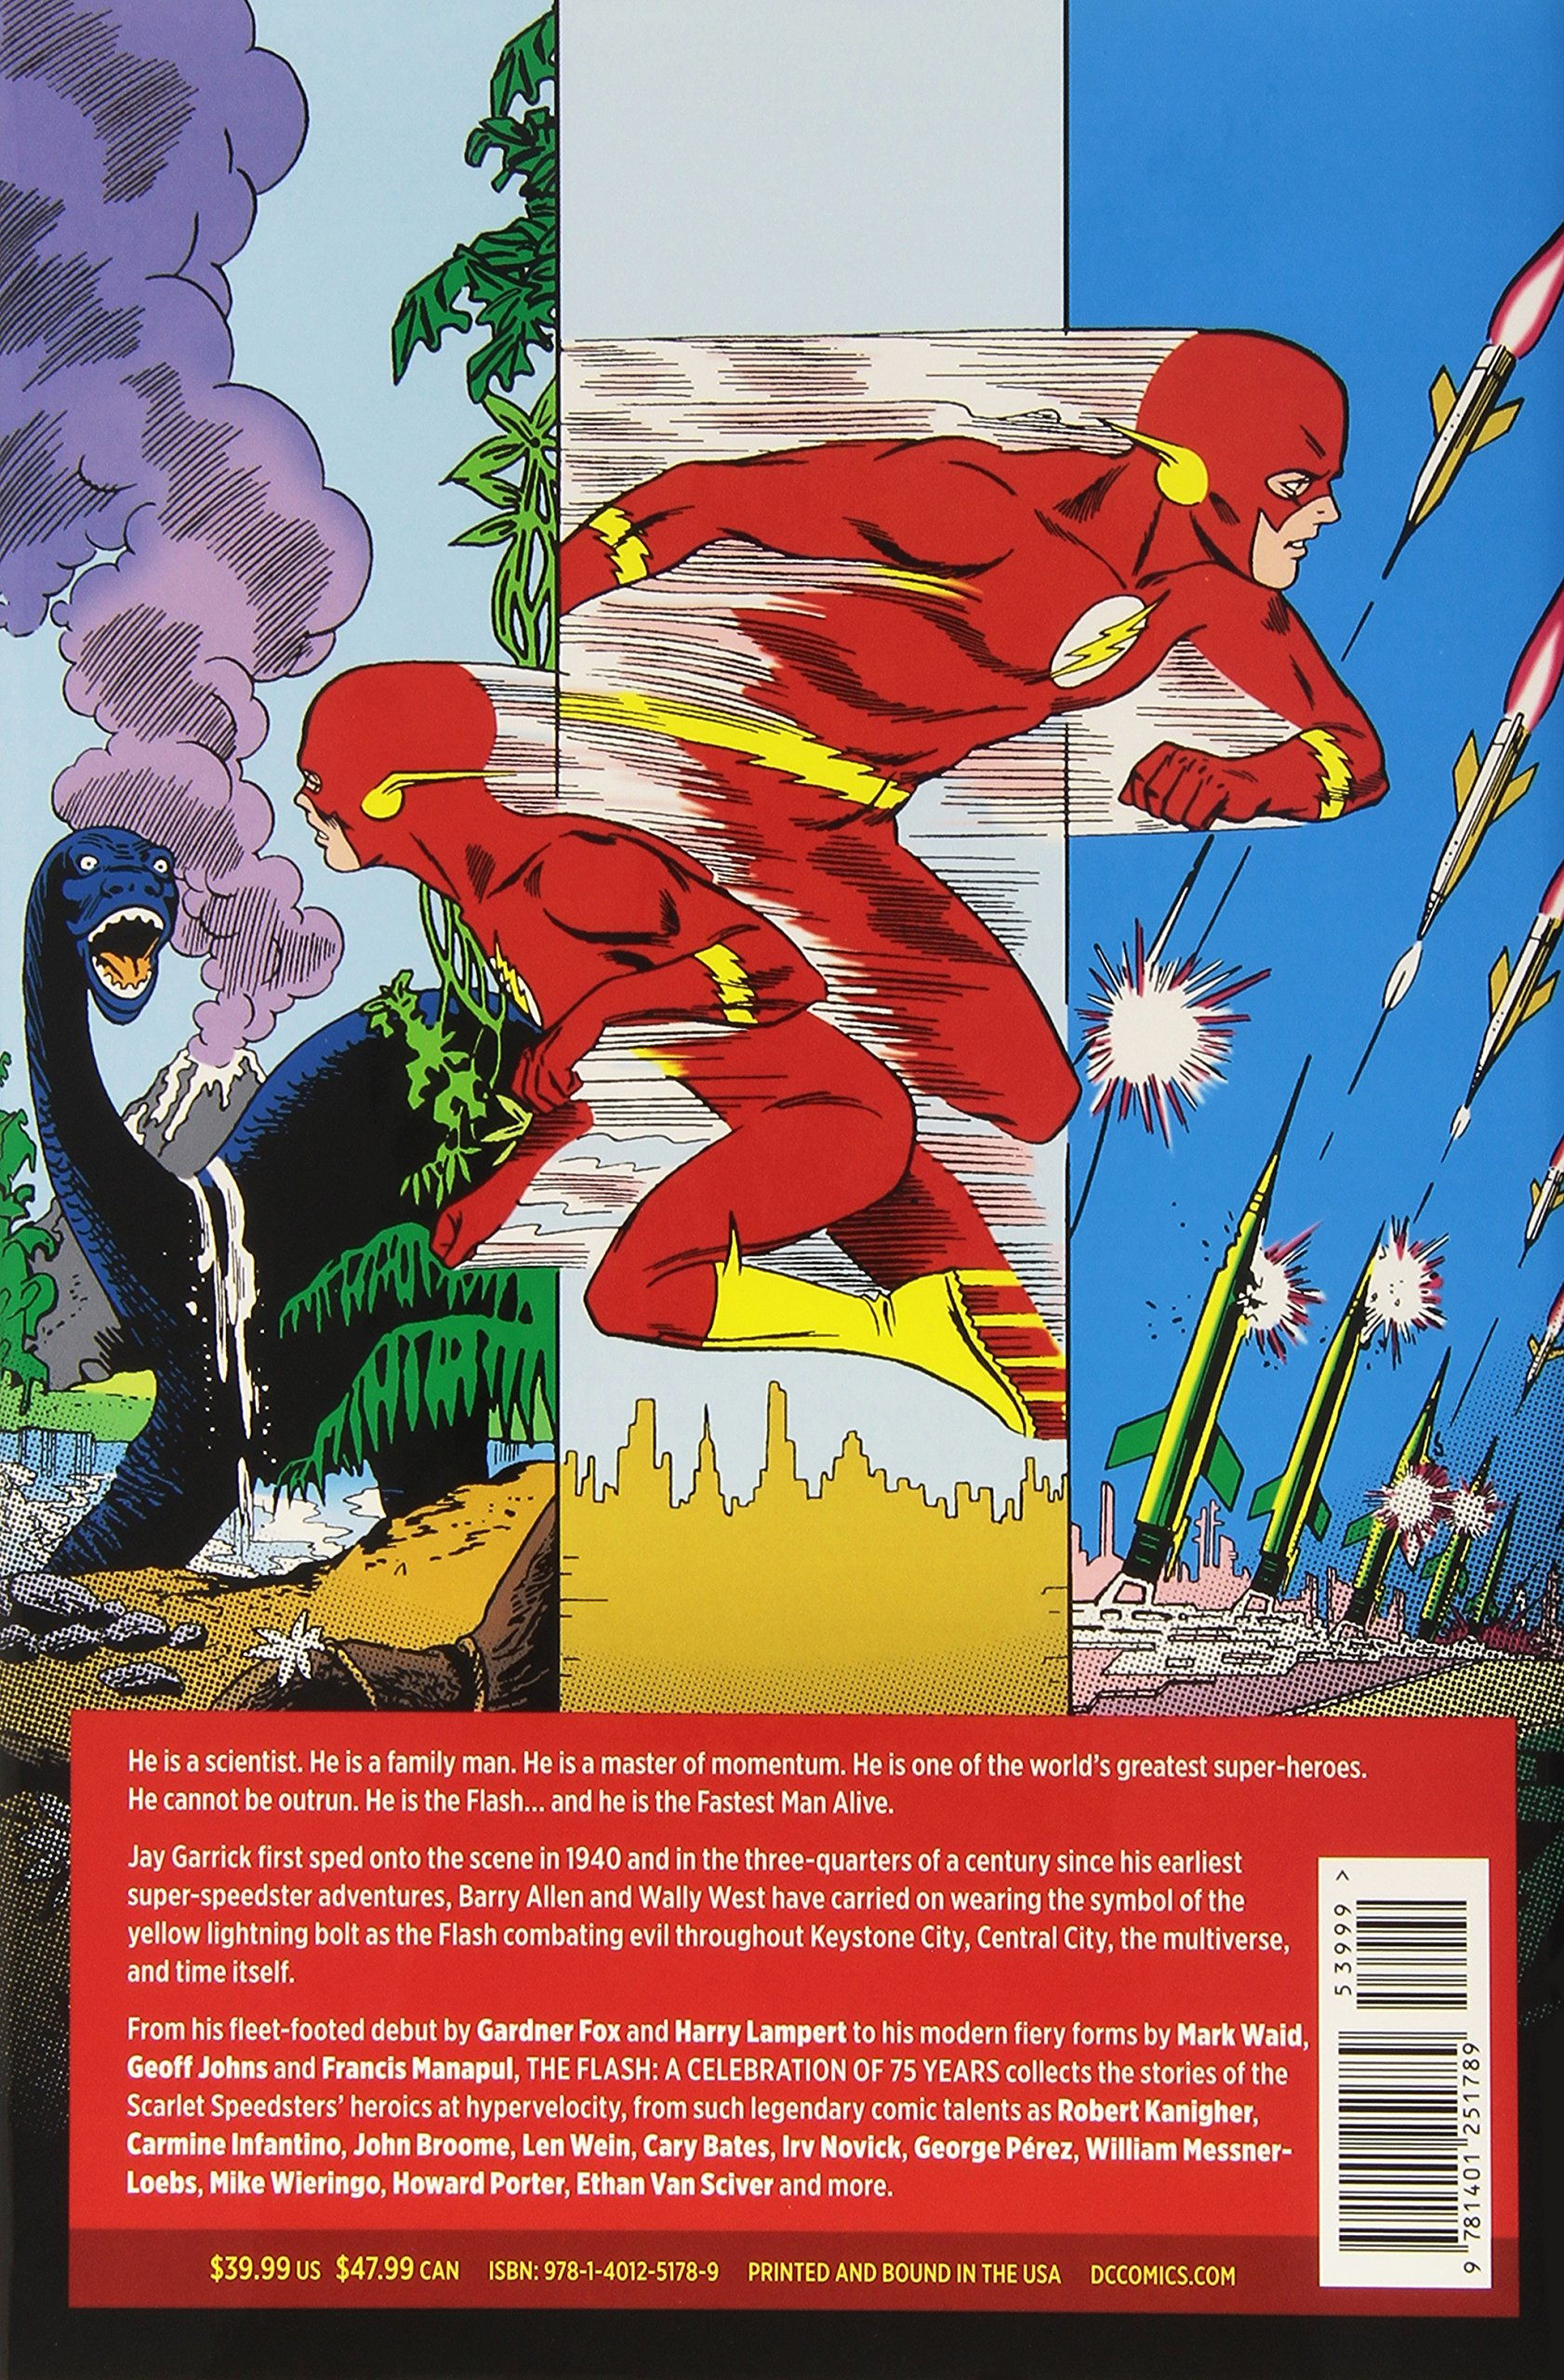 The Flash: A Celebration Of 75 Years: Gardner Fox, Geoff Johns, Carmine  Infantino: 9781401251789: Amazon: Books